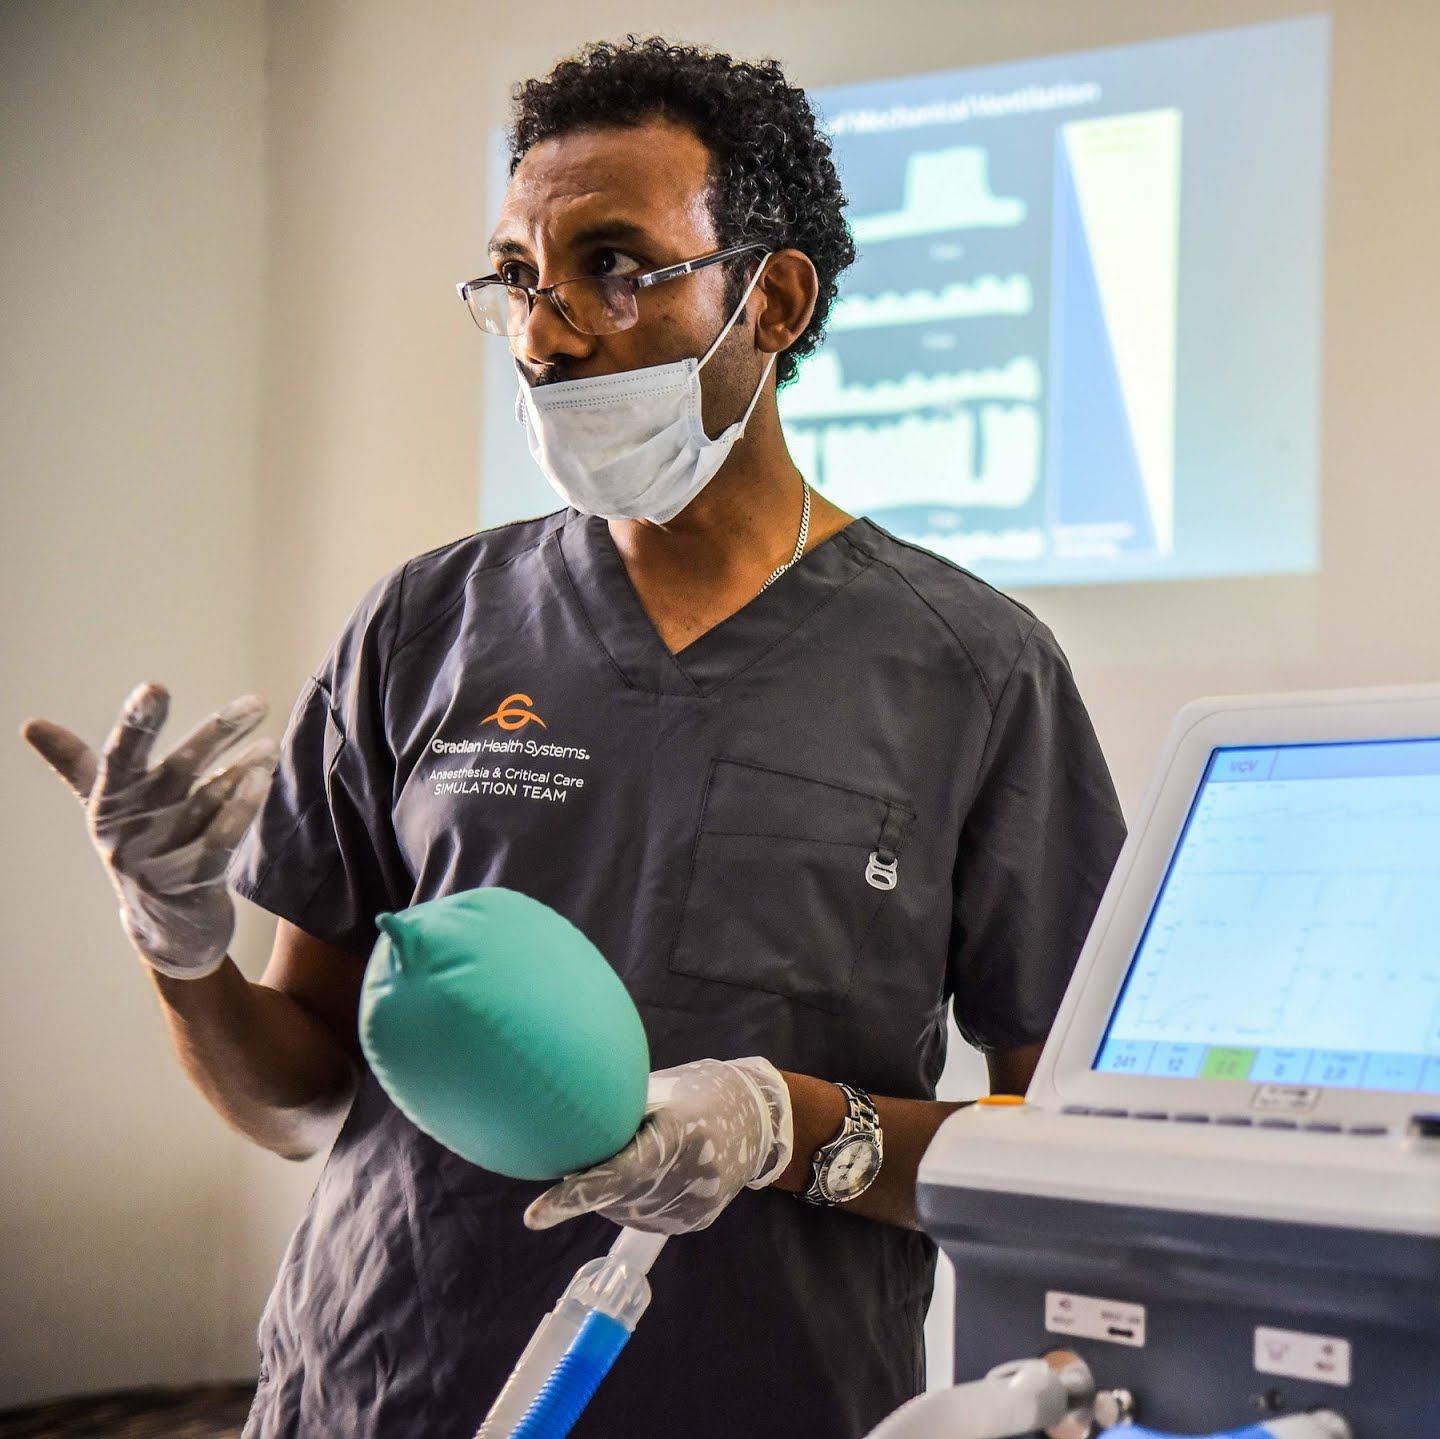 Habtamu Kehali provides training for doctors on how to use mechanical ventilators for coronavirus patients at the American Medical Center in Addis Ababa, Ethiopia.